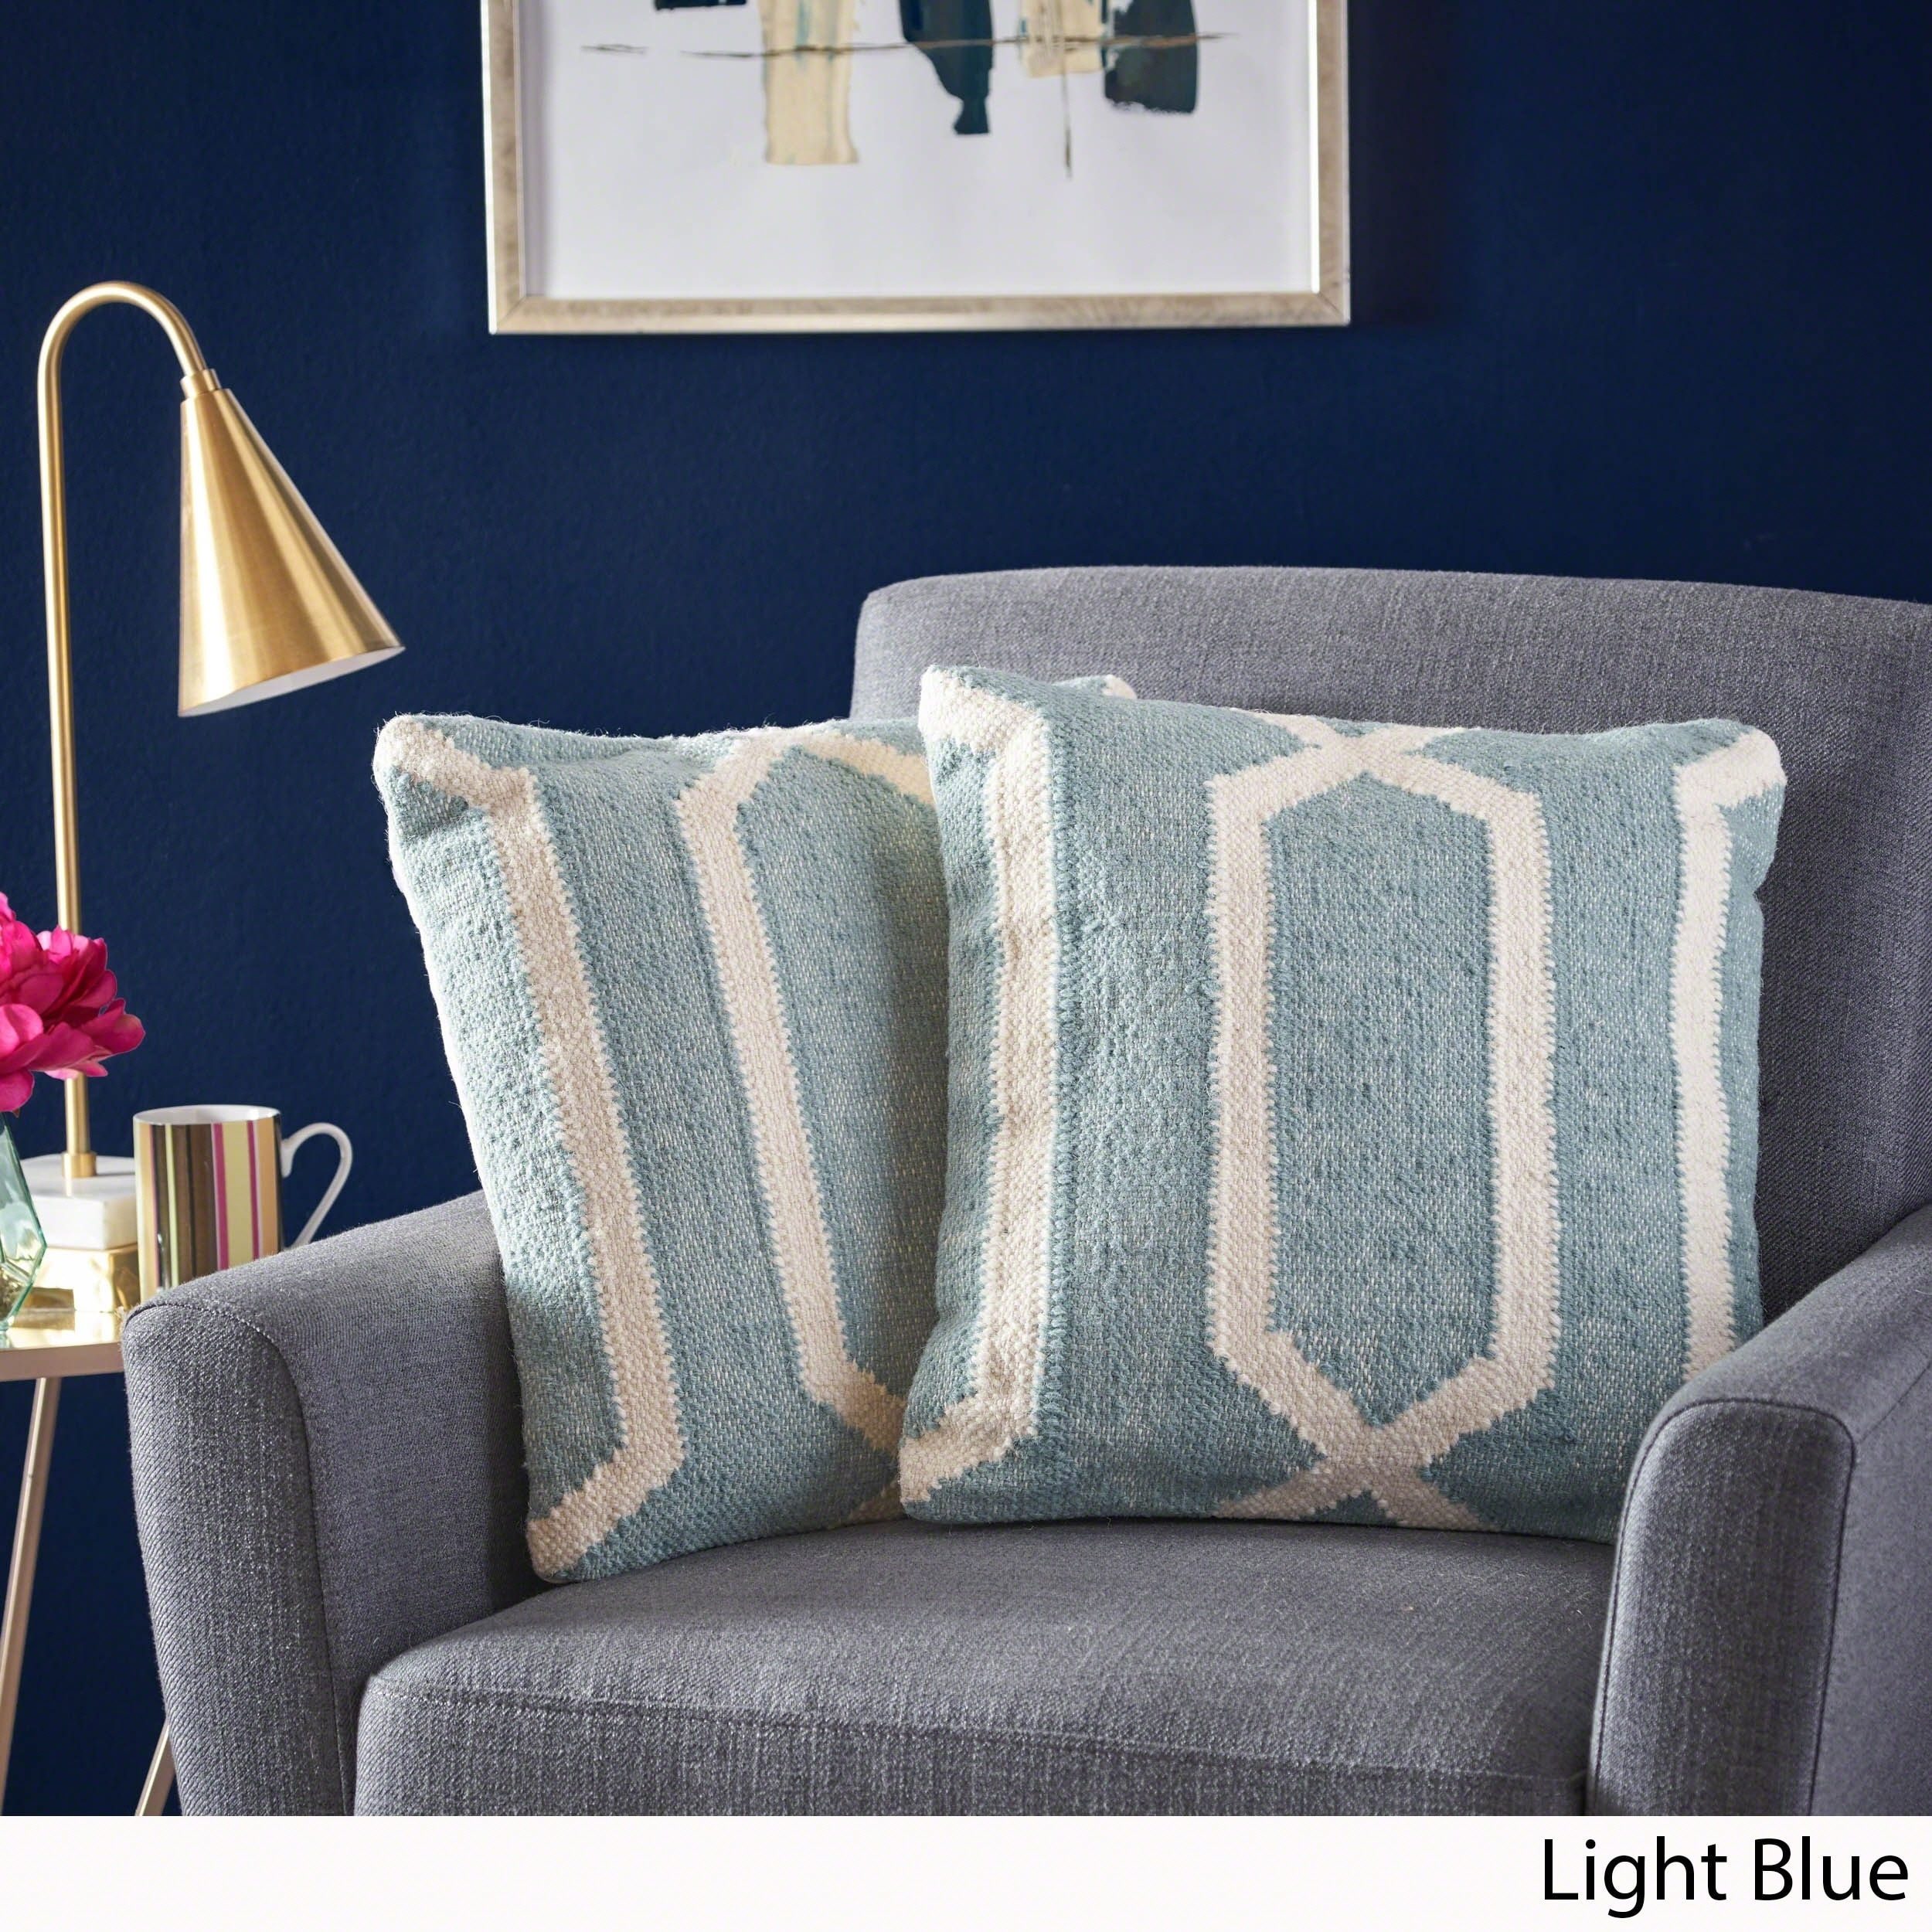 Buy Throw Pillows Online At Our Best Decorative Inside Flats Cariana Navy 38 Accessories Deals